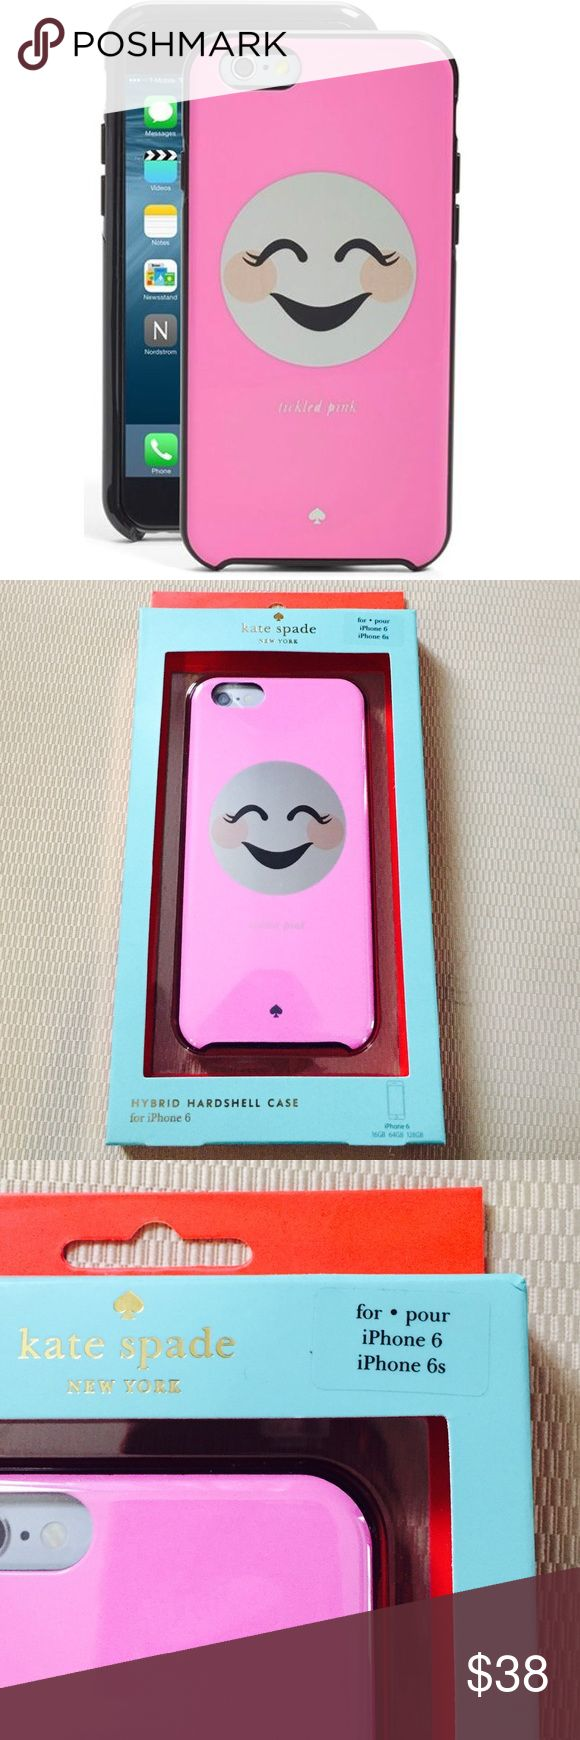 kate spade♠️ 'tickled pink' iPhone 6 and 6s case brand new in box kate spade♠️ New York 'tickled pink' iPhone 6 and 6s case. Show off your silly side with this adorable hard-shell pink case featuring a blushing emoticon. This adorable hard-shell case keeps your iPhone safe from dust and scratches. kate spade Accessories Phone Cases